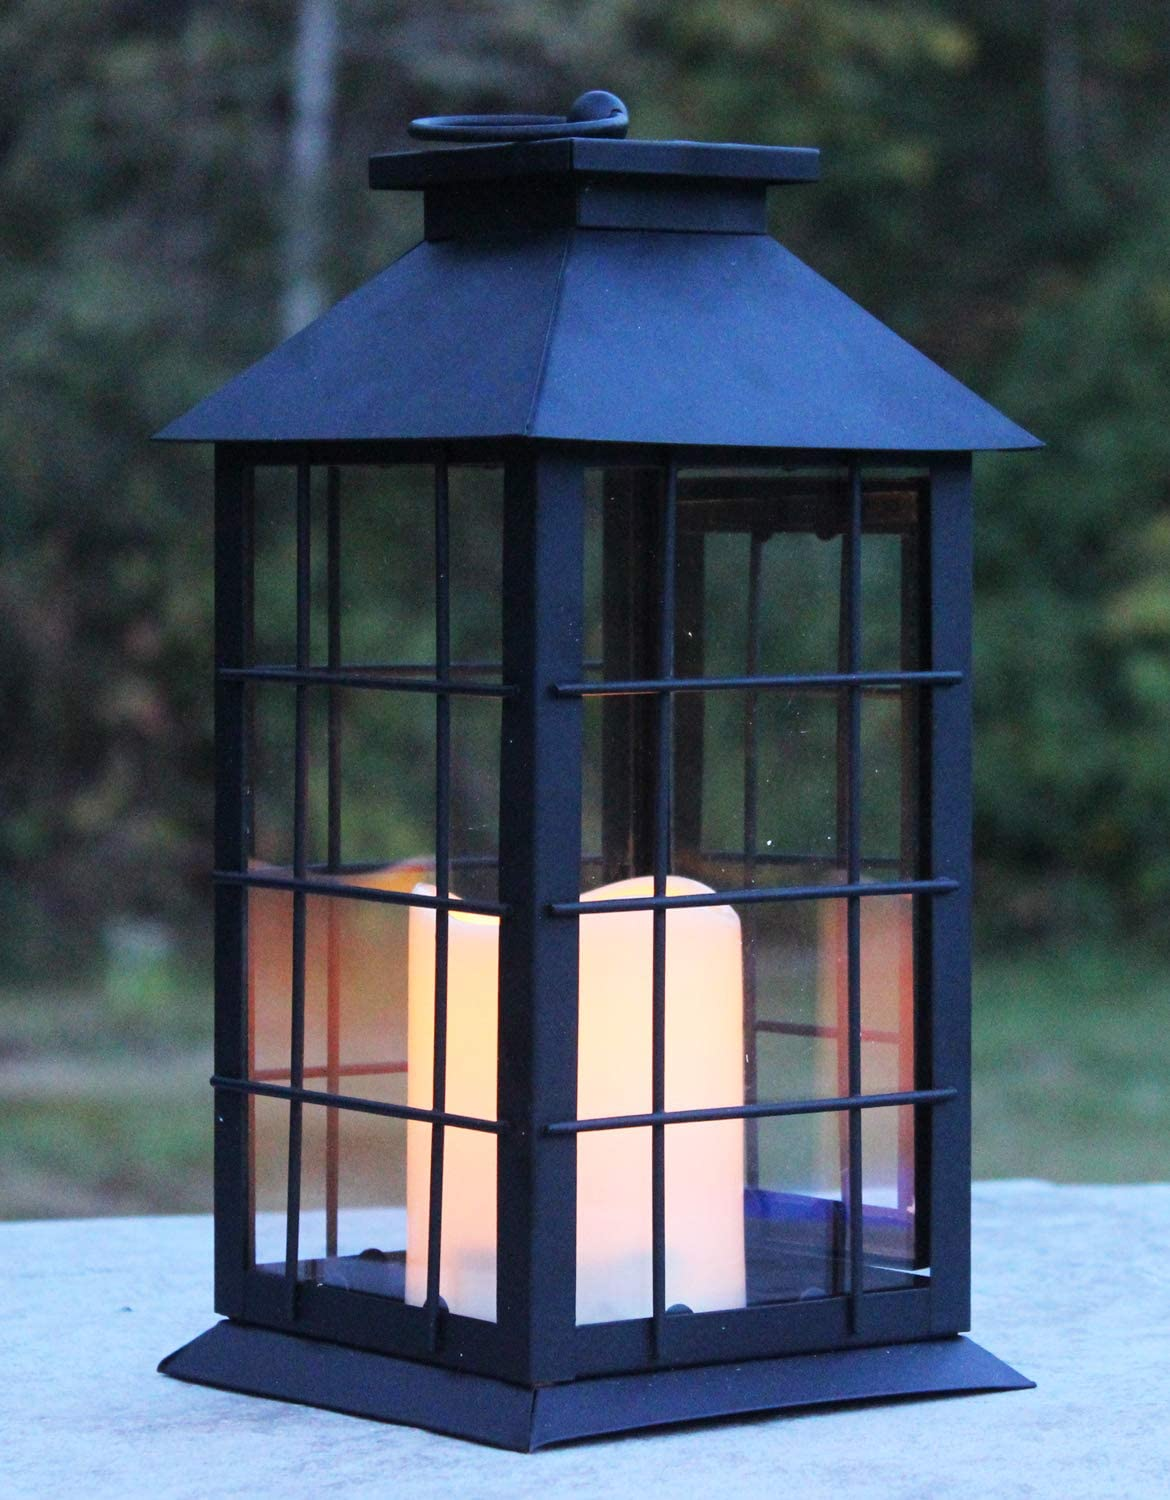 Seraphic Country Style Farmhouse Rustic Flic Lanterns Metal Nippon ! Super beauty product restock quality top! regular agency with